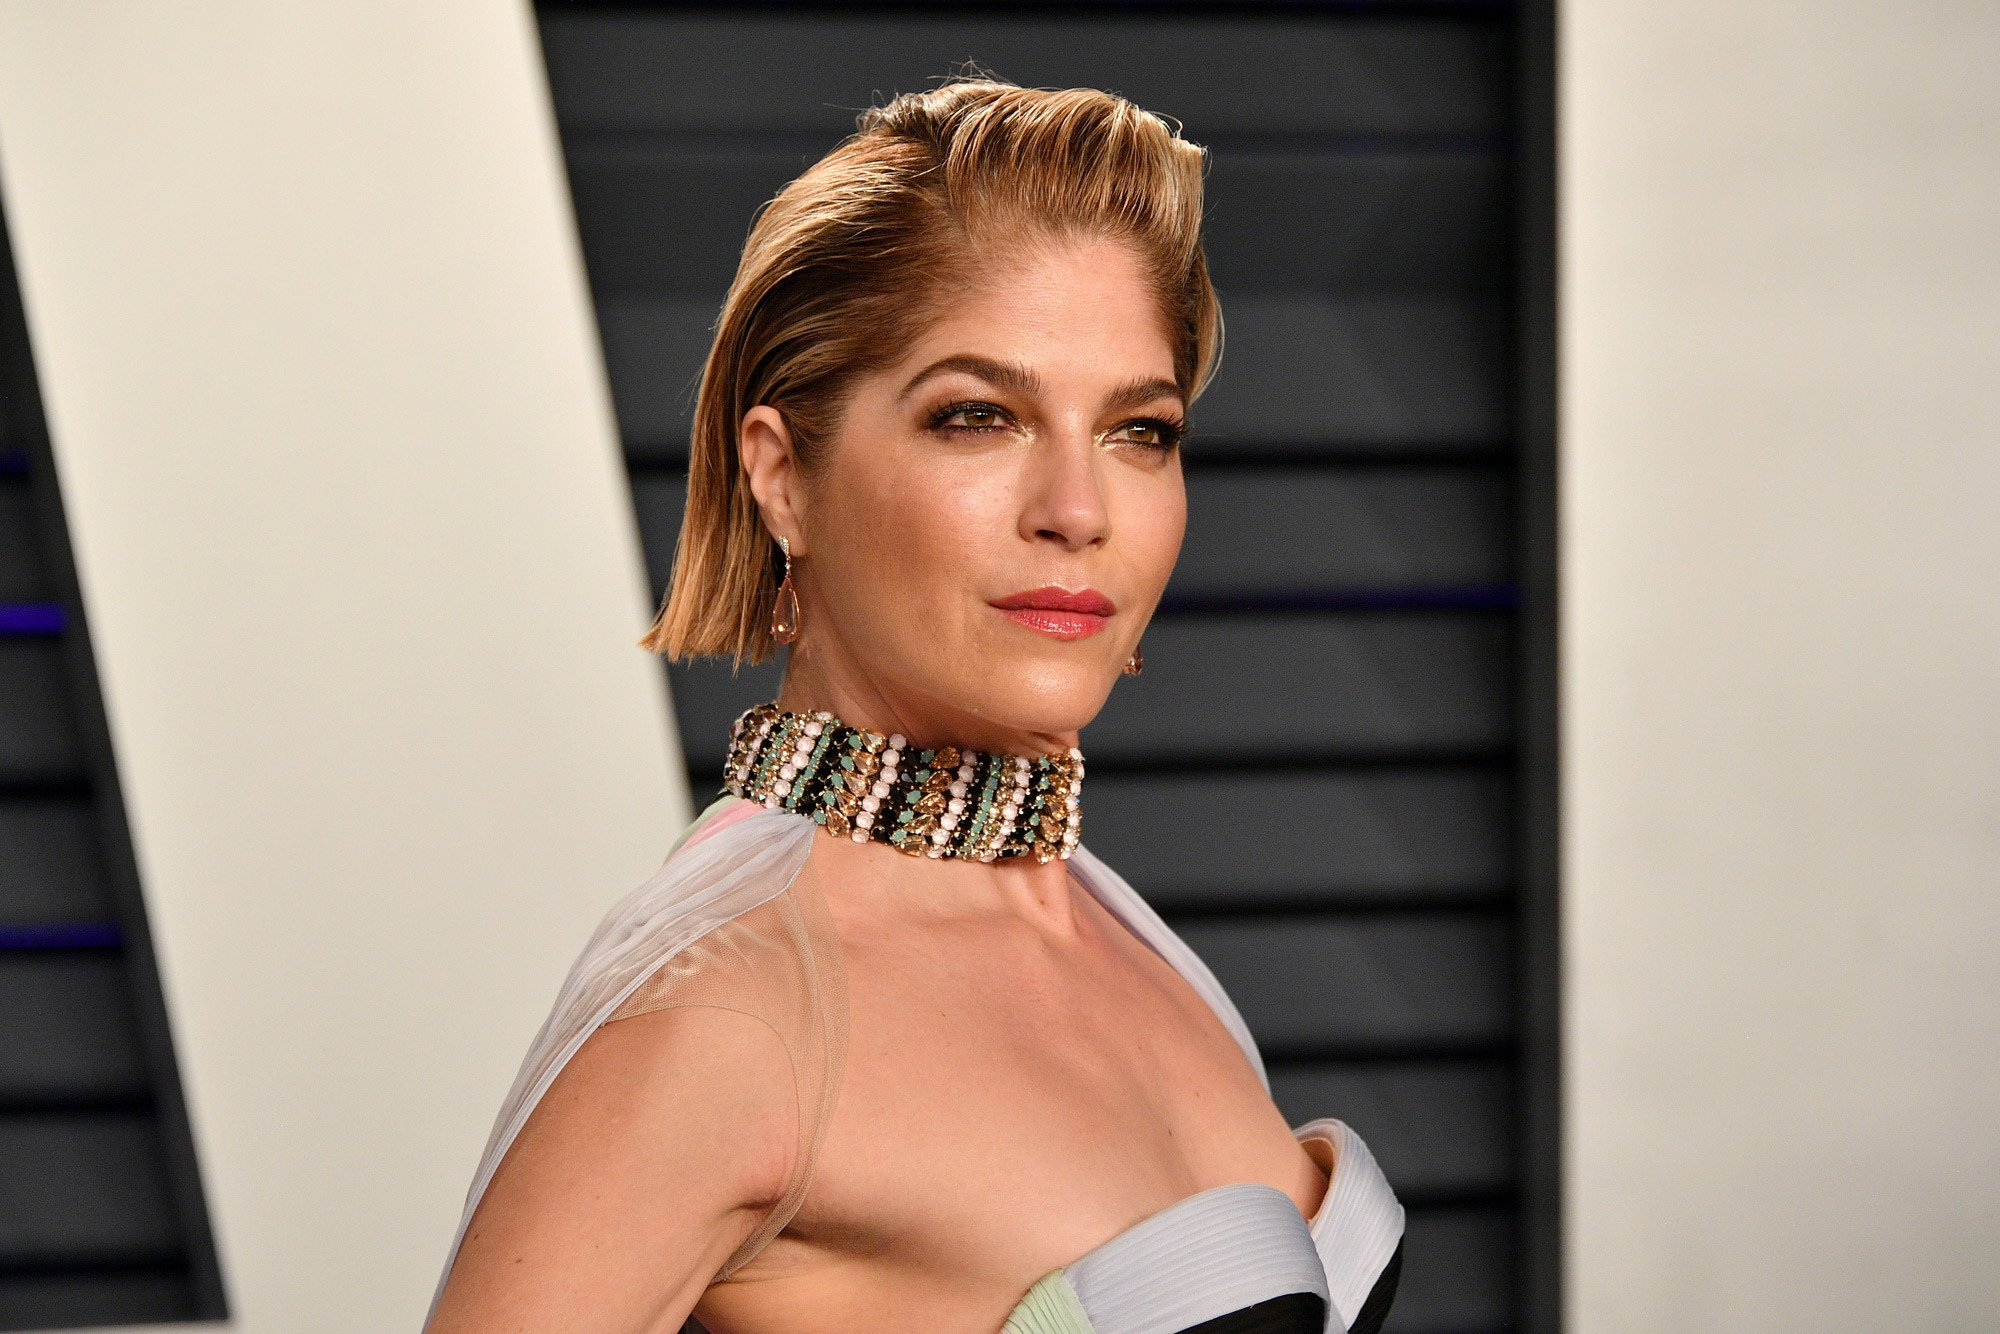 Selma Blair shares candid makeup tutorial for people with MS